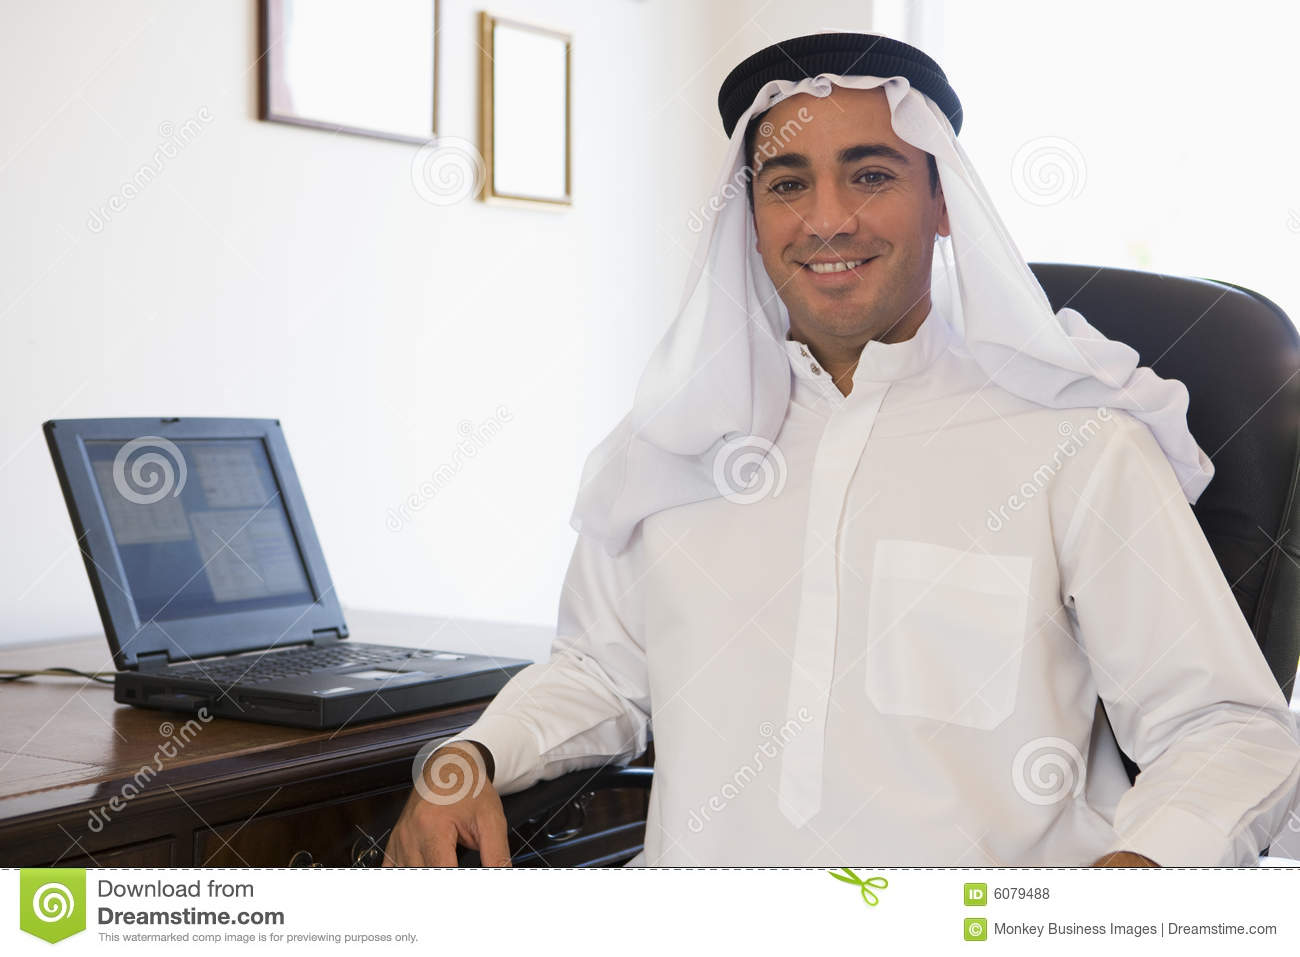 middle eastern single men in house Looking for florida middle eastern men look through the latest members below to find your ideal partner start a conversation and setup a meetup later tonight we have thousands of members that just can't wait to talk to someone exactly li, middle eastern singles.